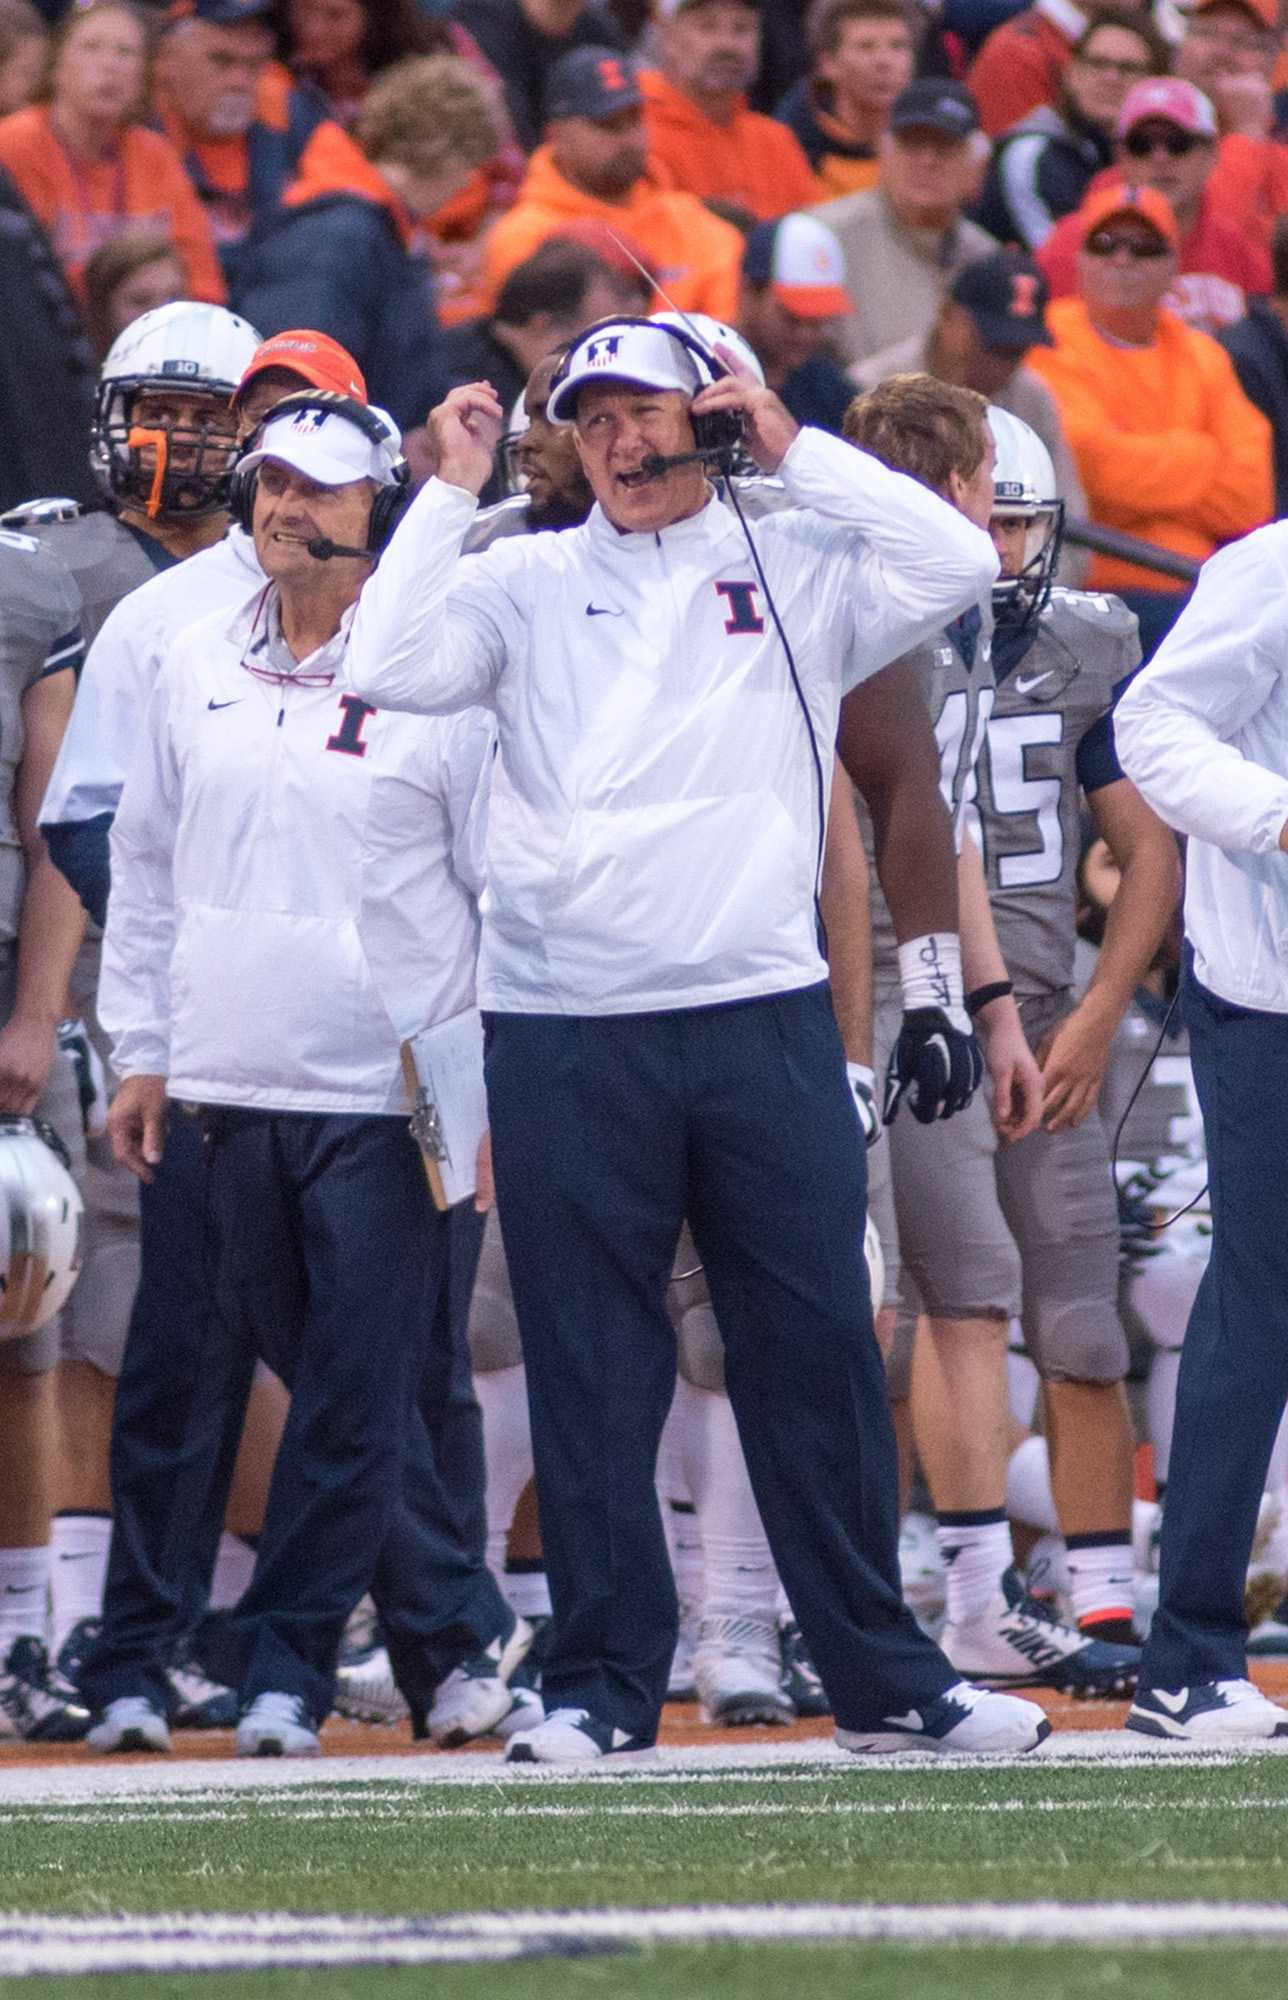 The+Illini+football+team+is+heading+to+West+Lafayette%2C+Indiana%2C+this+weekend%2C+and+if+it+doesn%27t+pull+out+a+win%2C+its+bowl+prospects+are+poor.